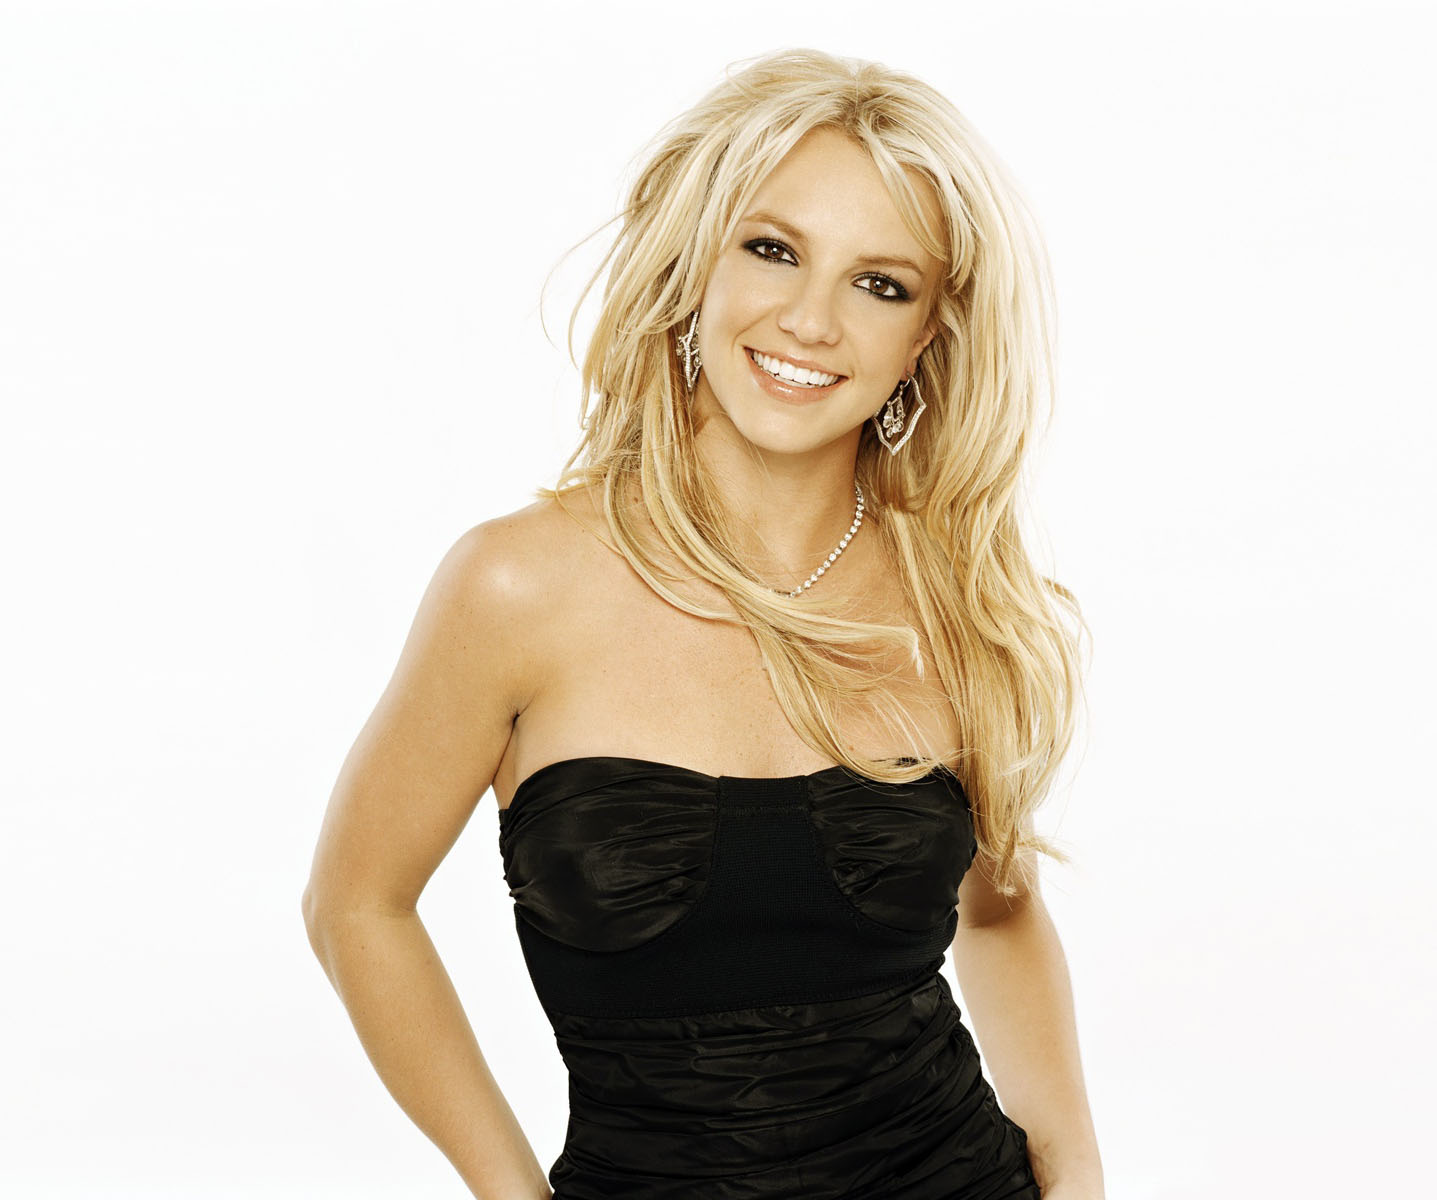 Britney Spears New Hd Wallpapers/Images 2013 | Its All ... Britney